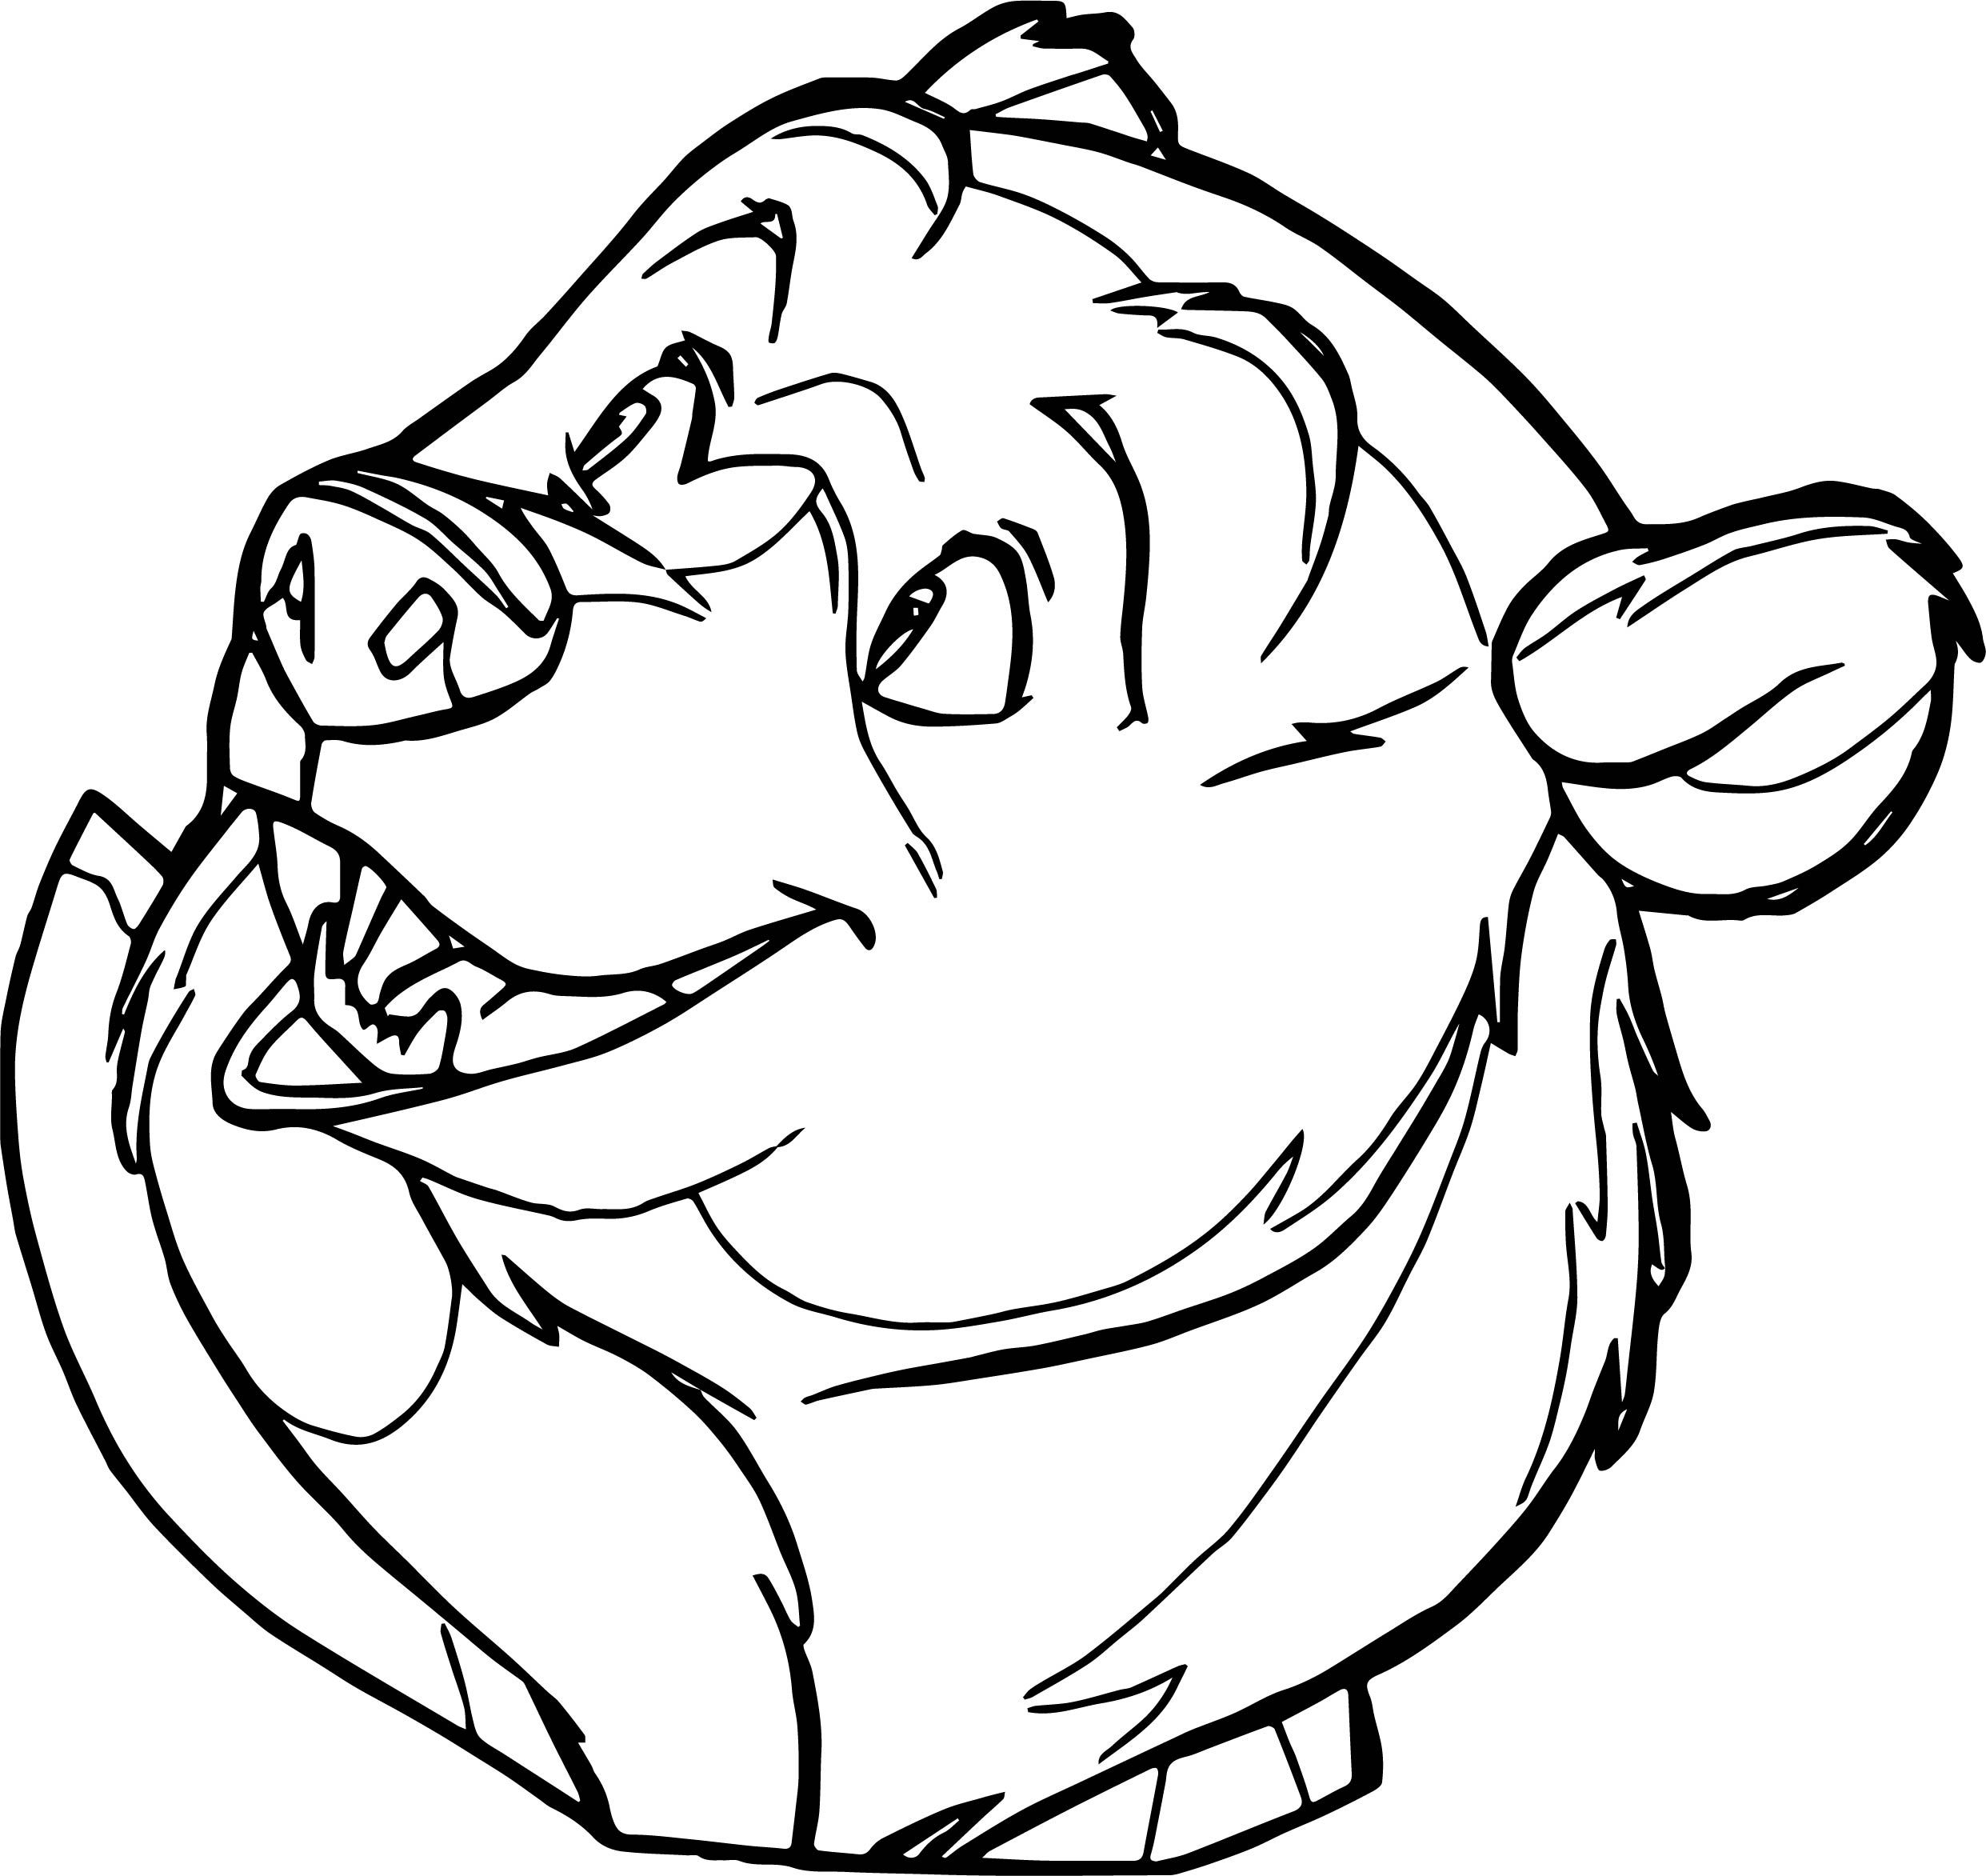 Awesome Bear Face Cartoon Coloring Page